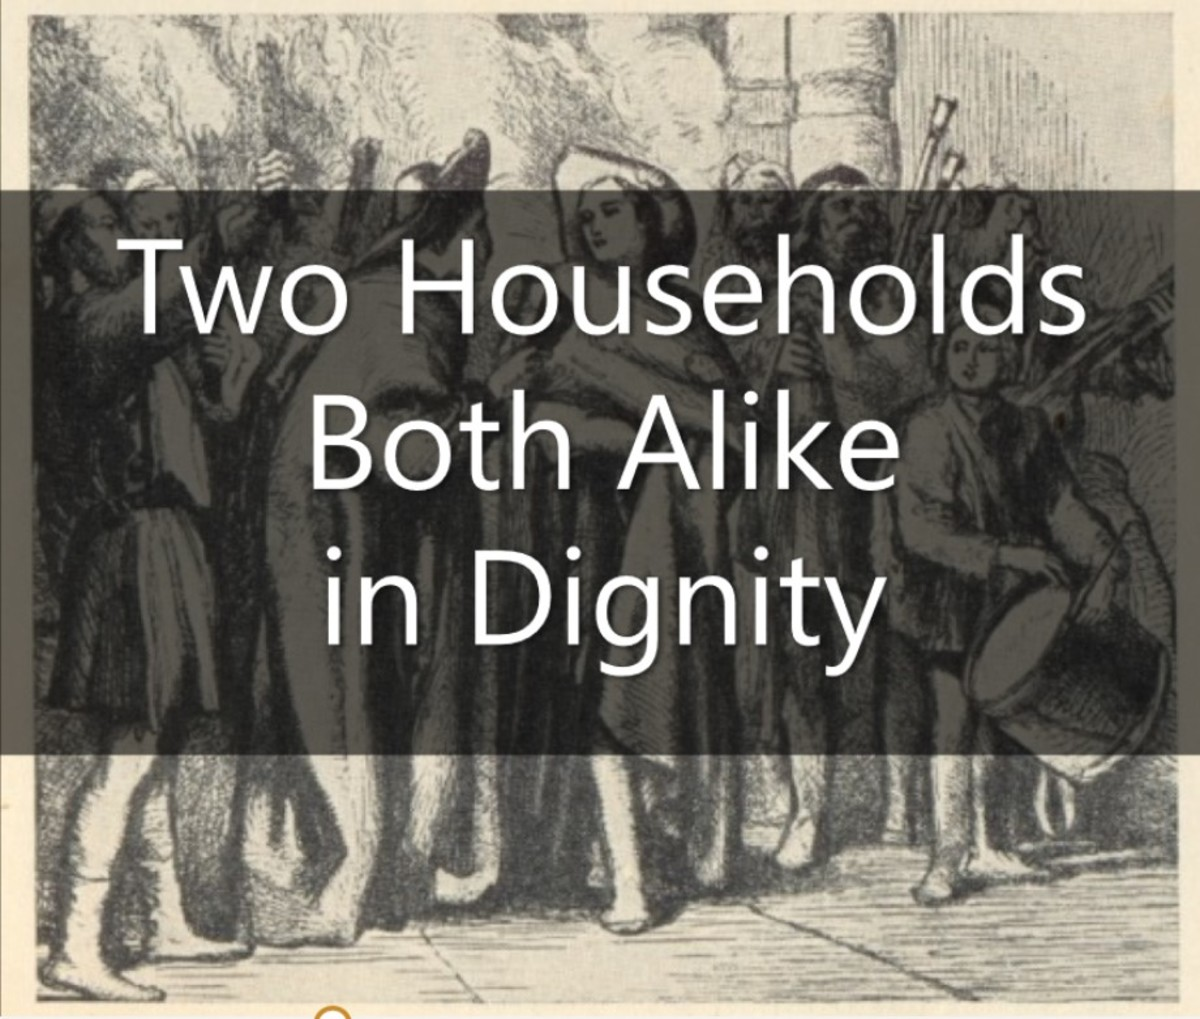 Two Households, Both Alike in Dignity: How to Understand the Meaning of the Line